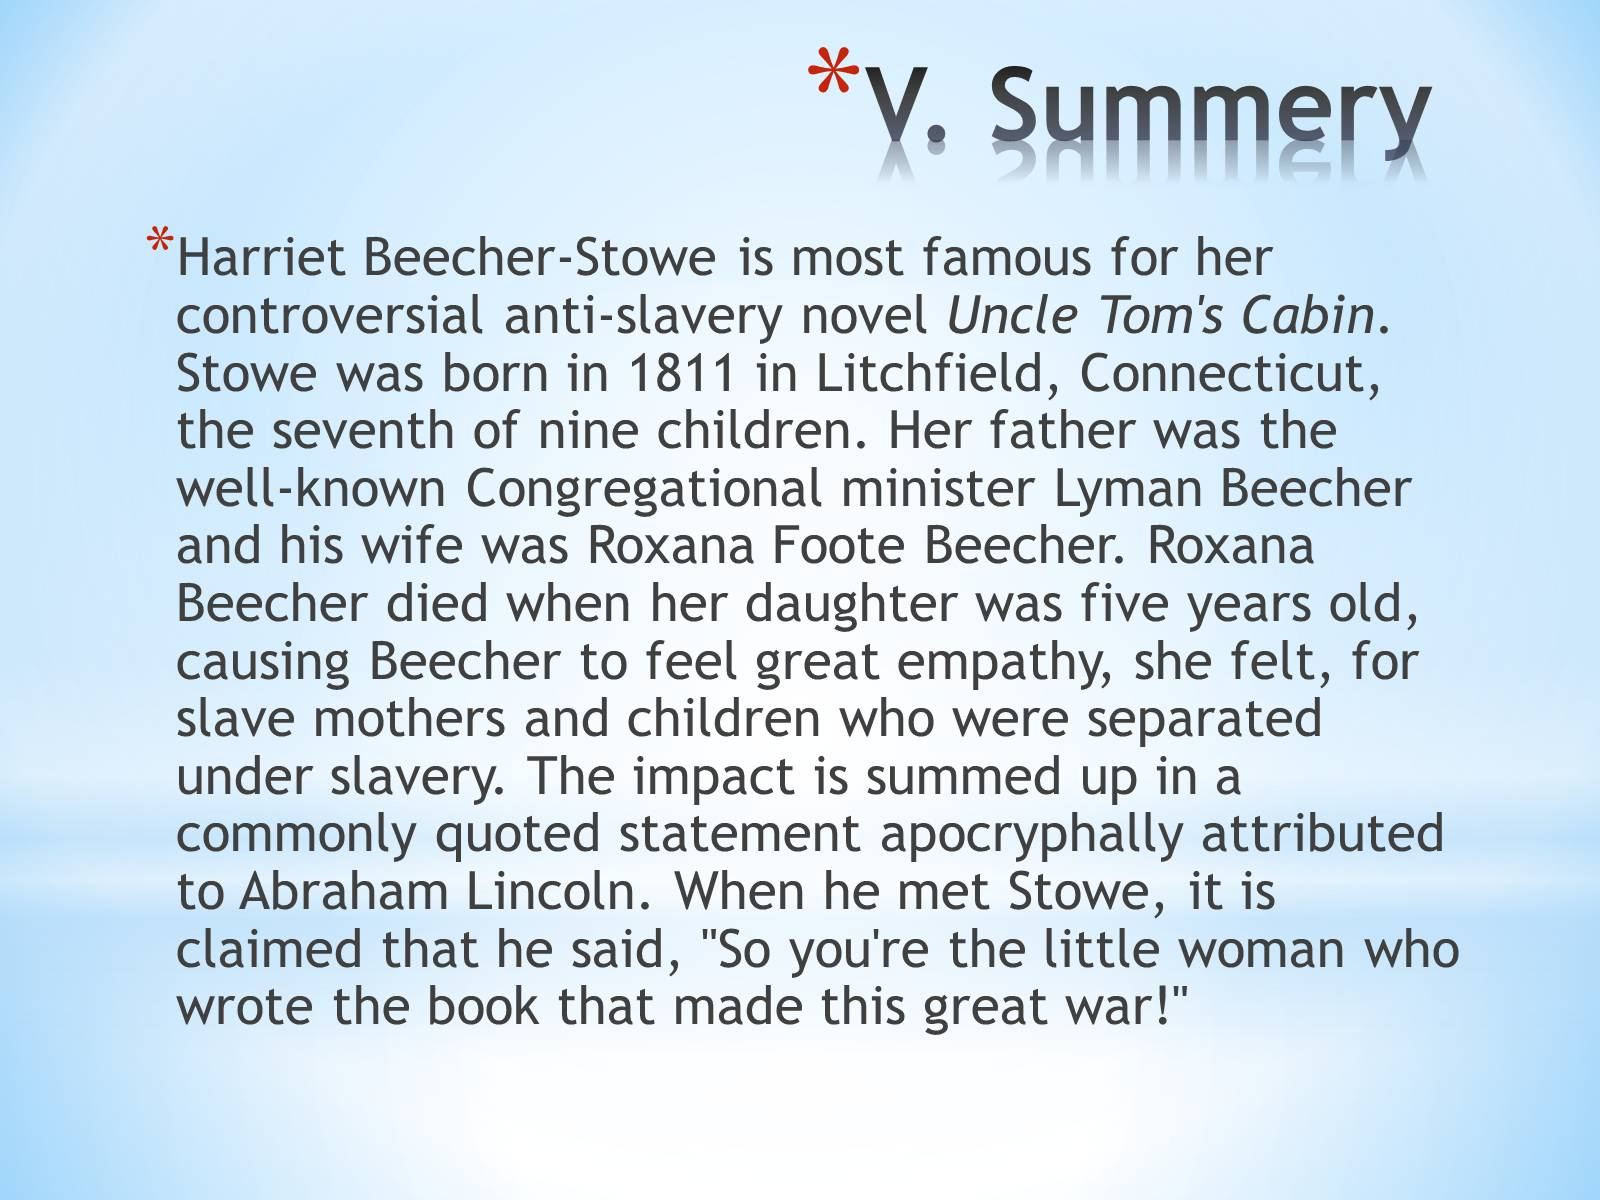 the evils of slavery as described in harriet beecher stowes book uncle toms cabin Harriet beecher stowe was born june 14, 1811 in litchfield, connecticut she was the daughter of she wrote the book to be a force against slavery, and was joining in with the feelings of many other the main point of harriet beecher stowe in the writing of uncle tom's cabin was to bring to light.